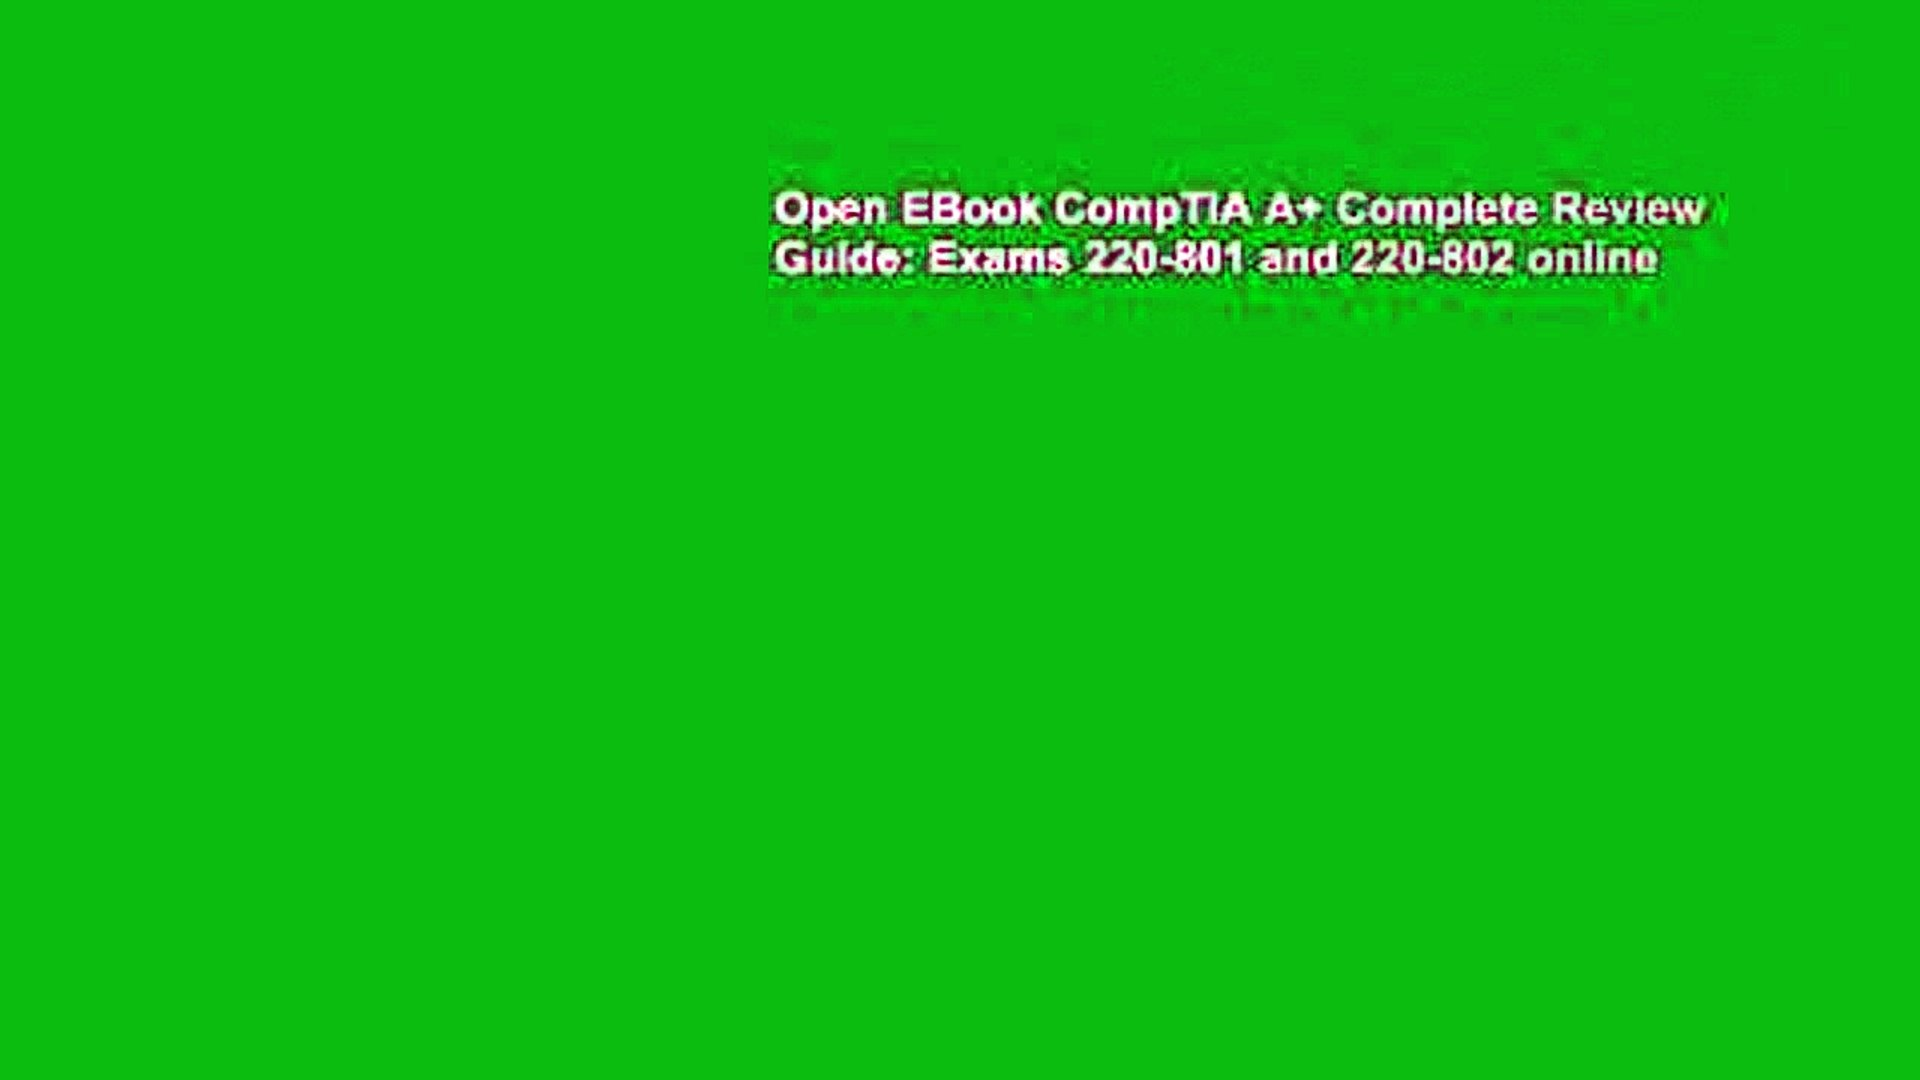 Open EBook CompTIA A+ Complete Review Guide: Exams 220-801 and 220-802 online